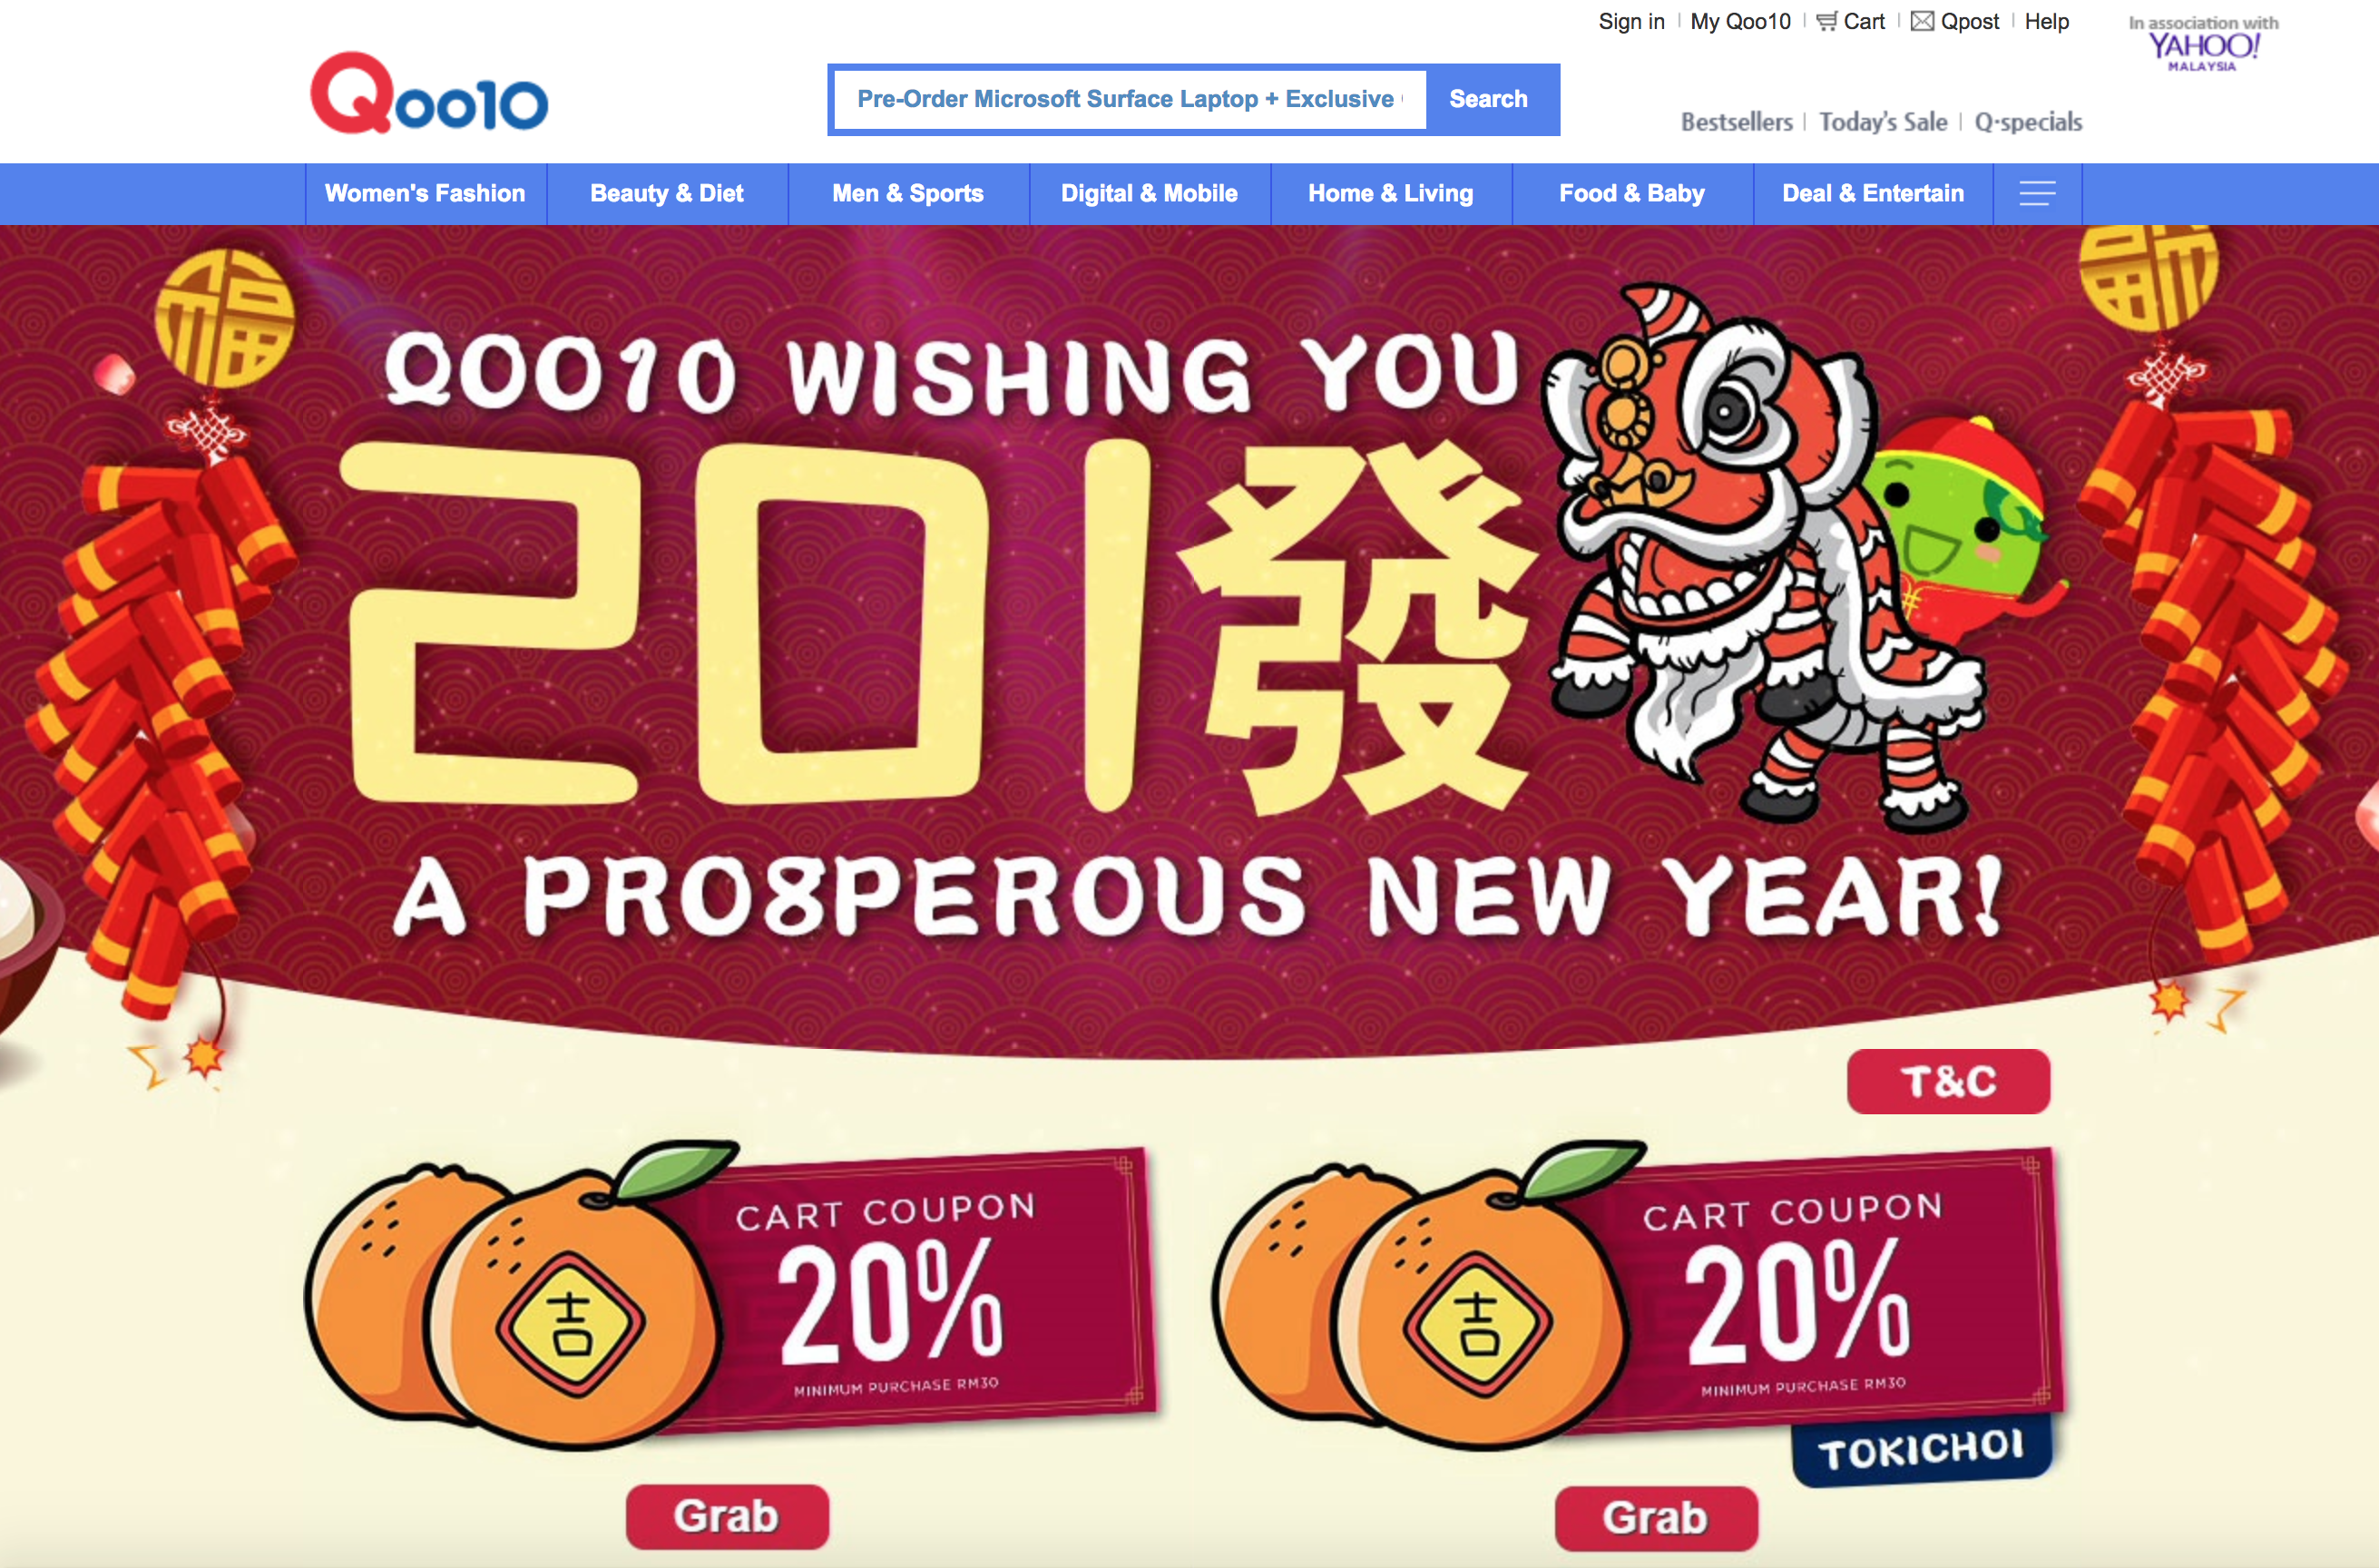 Cart coupon for Chinese New Year event on Qoo10